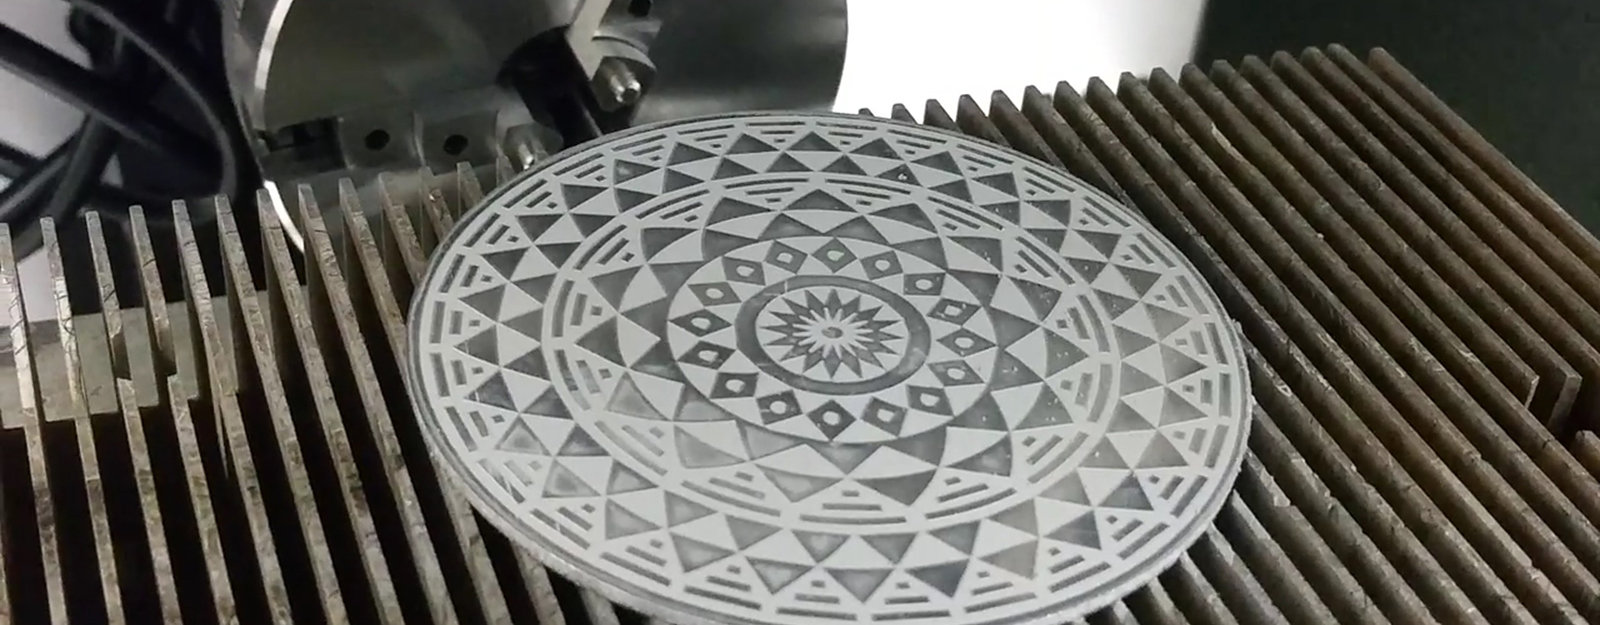 Wicked Footage (and Sound) of High Speed Laser Engraving - Core77